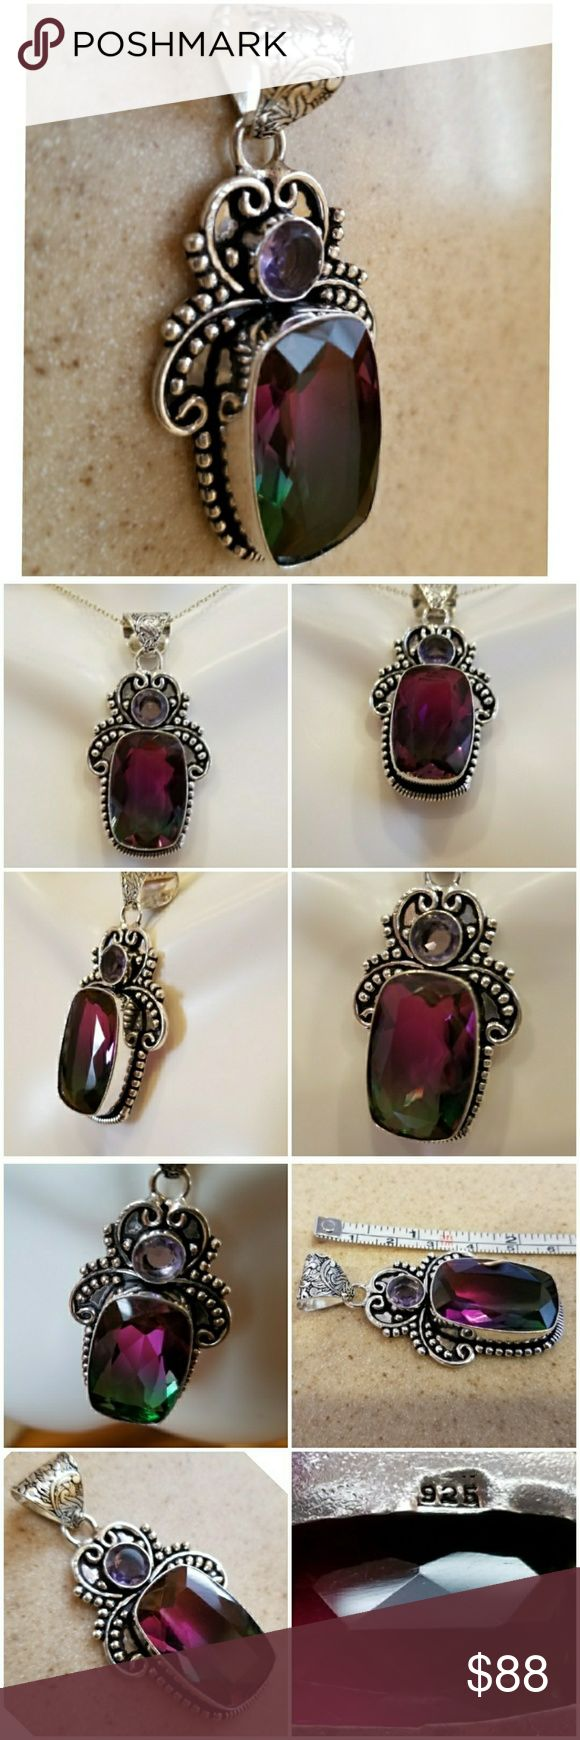 Genuine 42ct Bi-Colored Faceted Tourmaline Pendant Dark spunk to Forest Green with a pretty 3 ct Amethyst sitting above.  So much detail in the art design on this Beauty. Set in 925 stamped Solid Sterling Silver.  Please see all pictures for more detail. Brand New.  Never Worn.  WHOLESALE Prices Always! Jewelry Necklaces